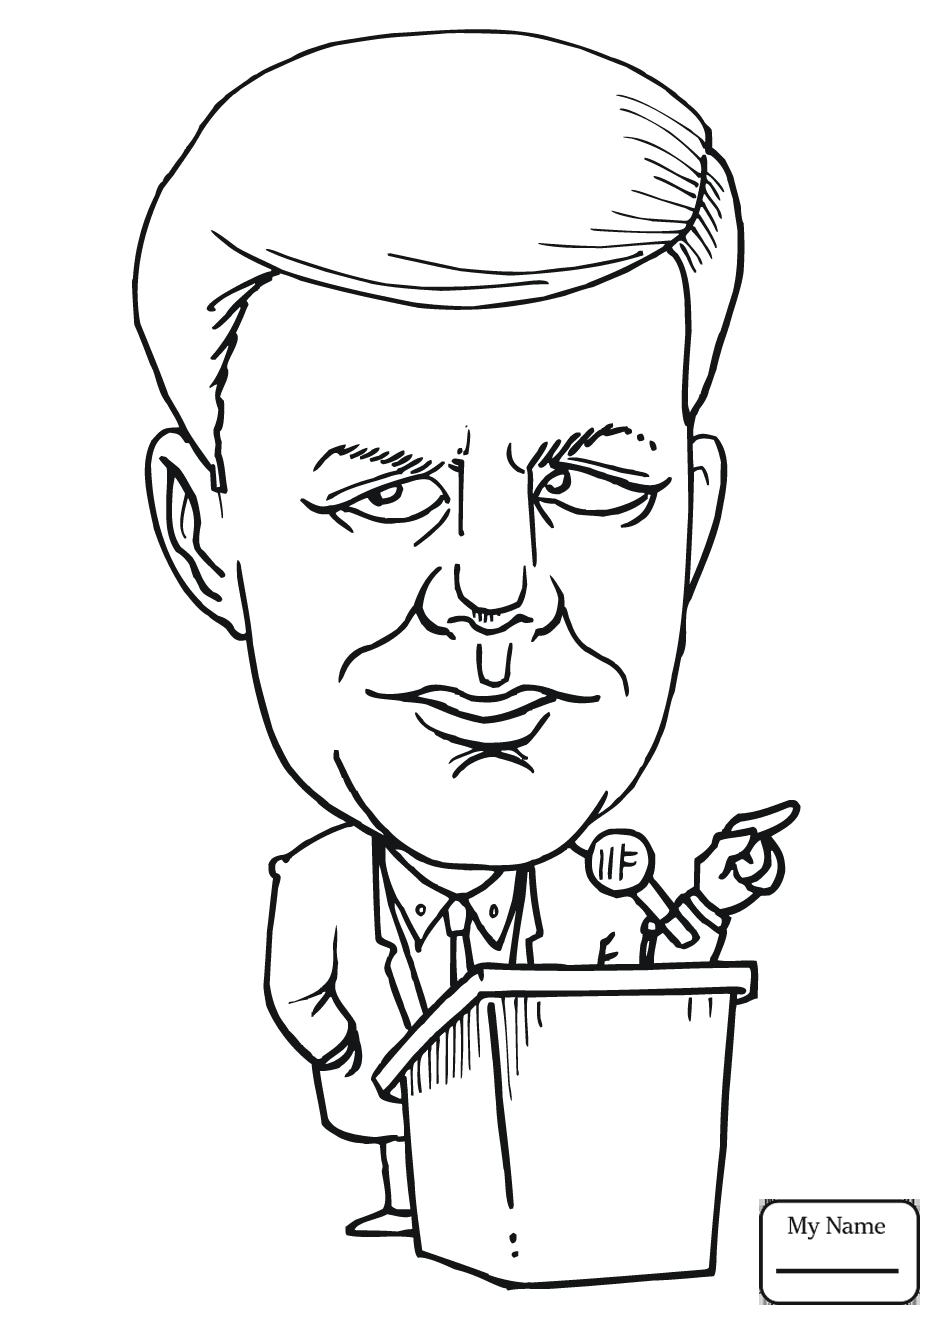 937x1326 Coloring Pages For Kids John Adams Caricature Us Presidents